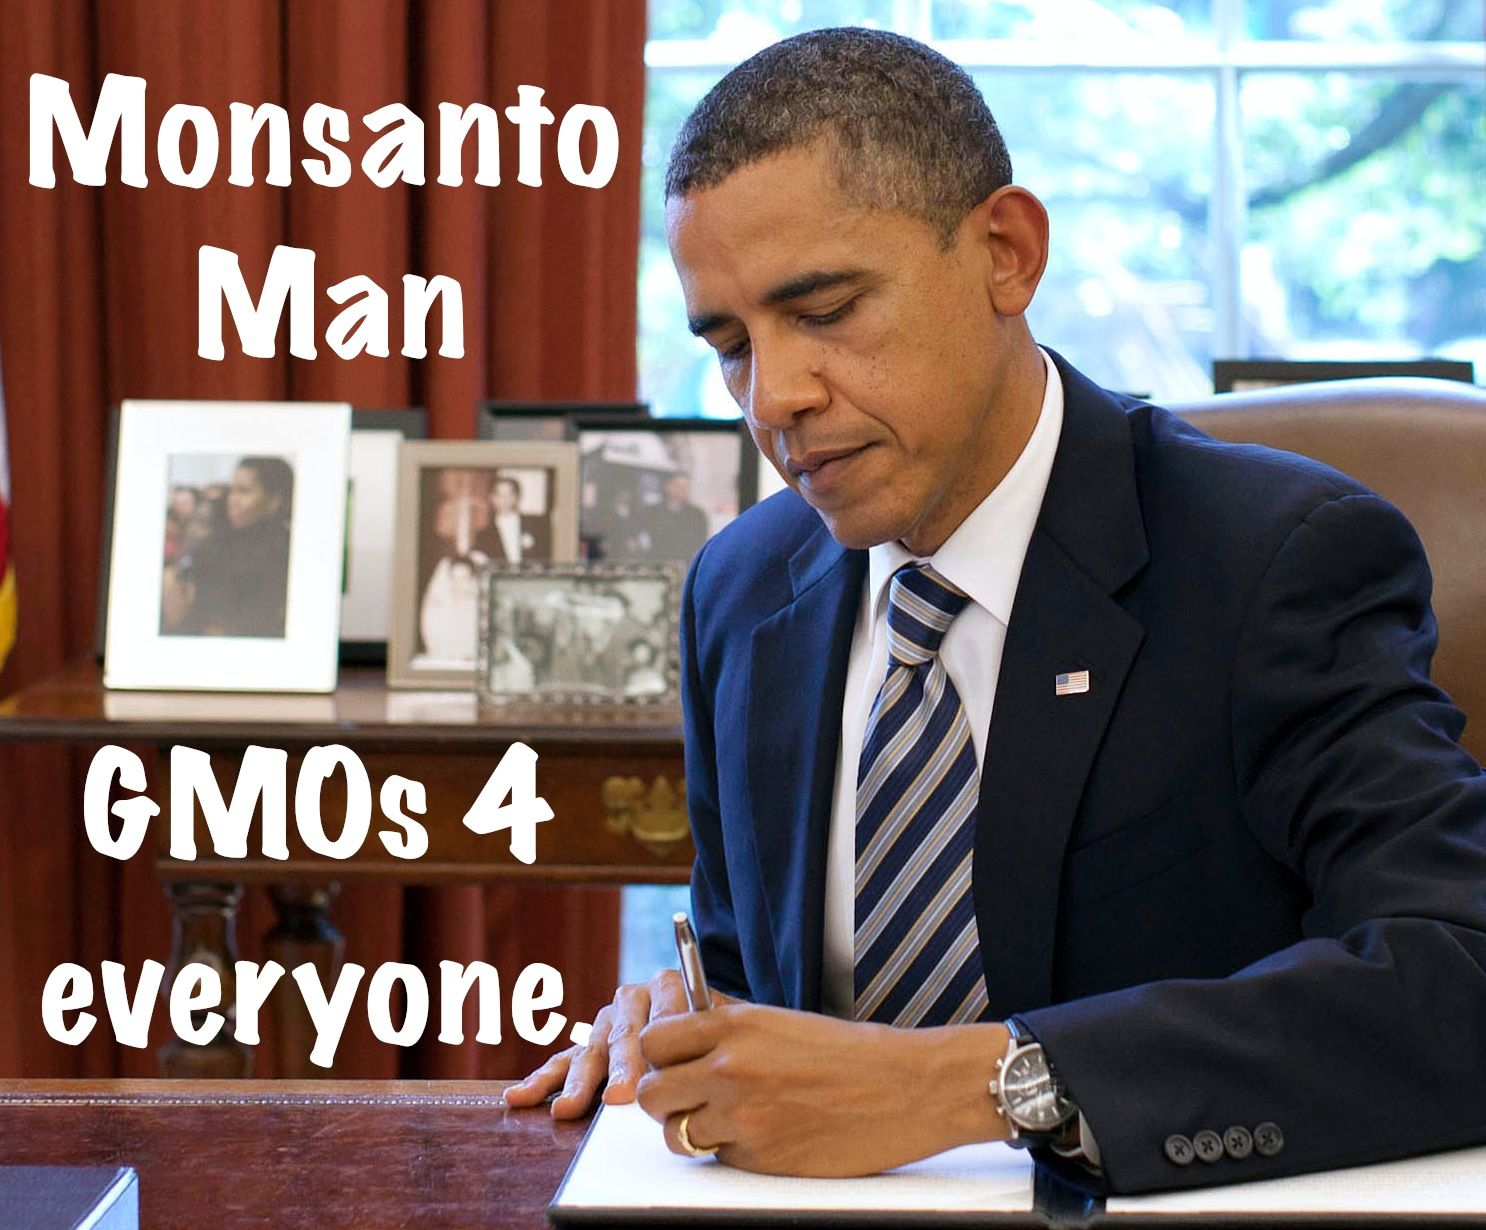 The world's most sinister corporation.. Monsanto: The world's poster child for corporate manipulation and deceit